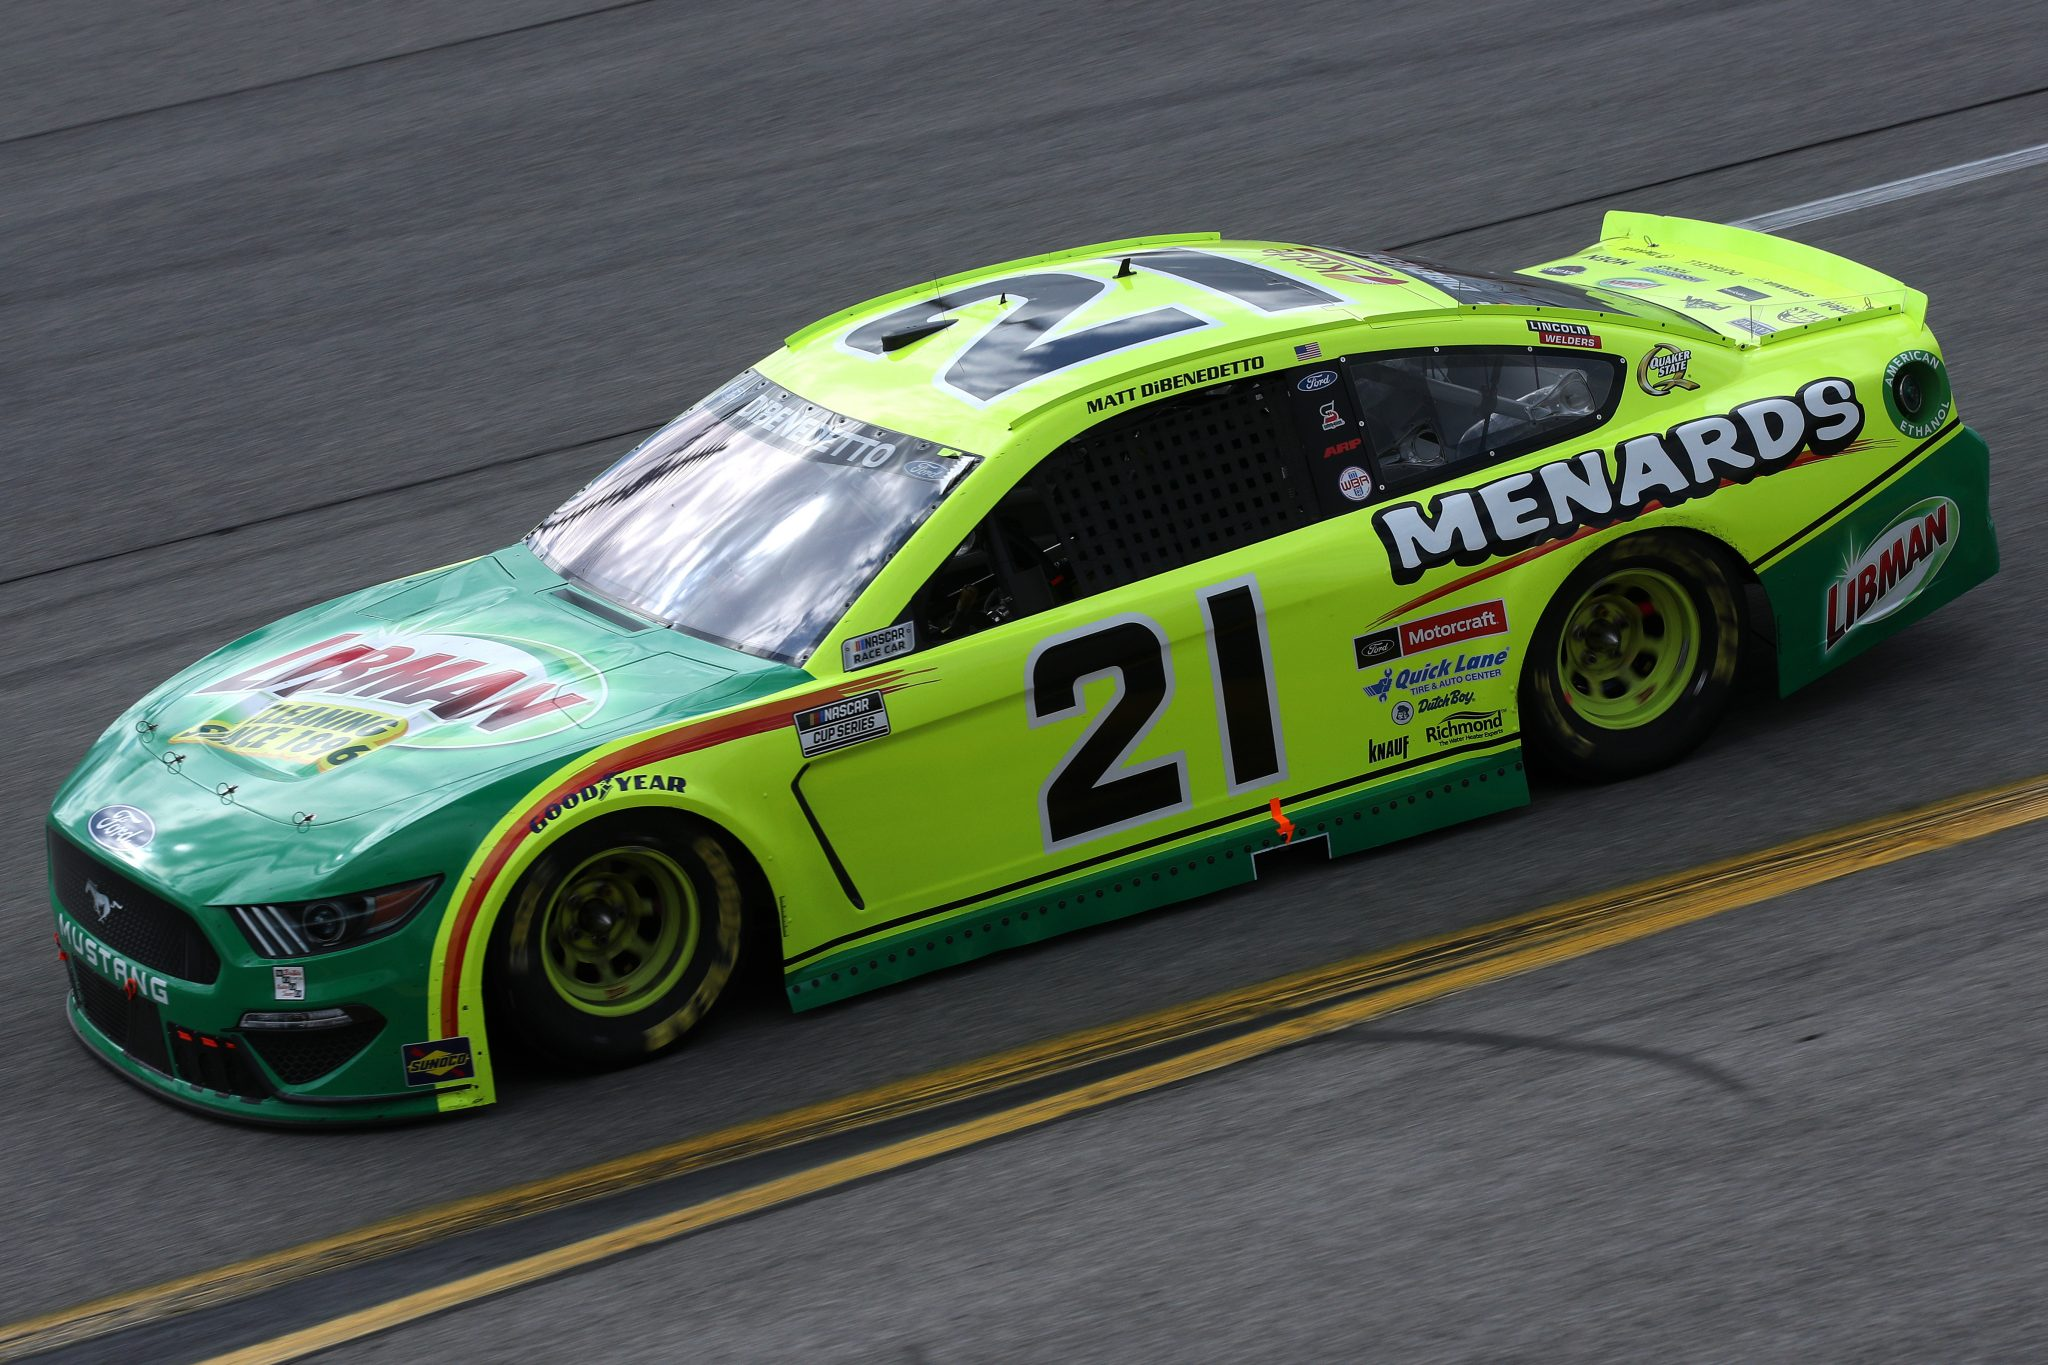 RICHMOND, VIRGINIA - APRIL 18: Matt DiBenedetto, driver of the #21 Menards/Libman Ford, drives during the NASCAR Cup Series Toyota Owners 400 at Richmond Raceway on April 18, 2021 in Richmond, Virginia. (Photo by Sean Gardner/Getty Images) | Getty Images